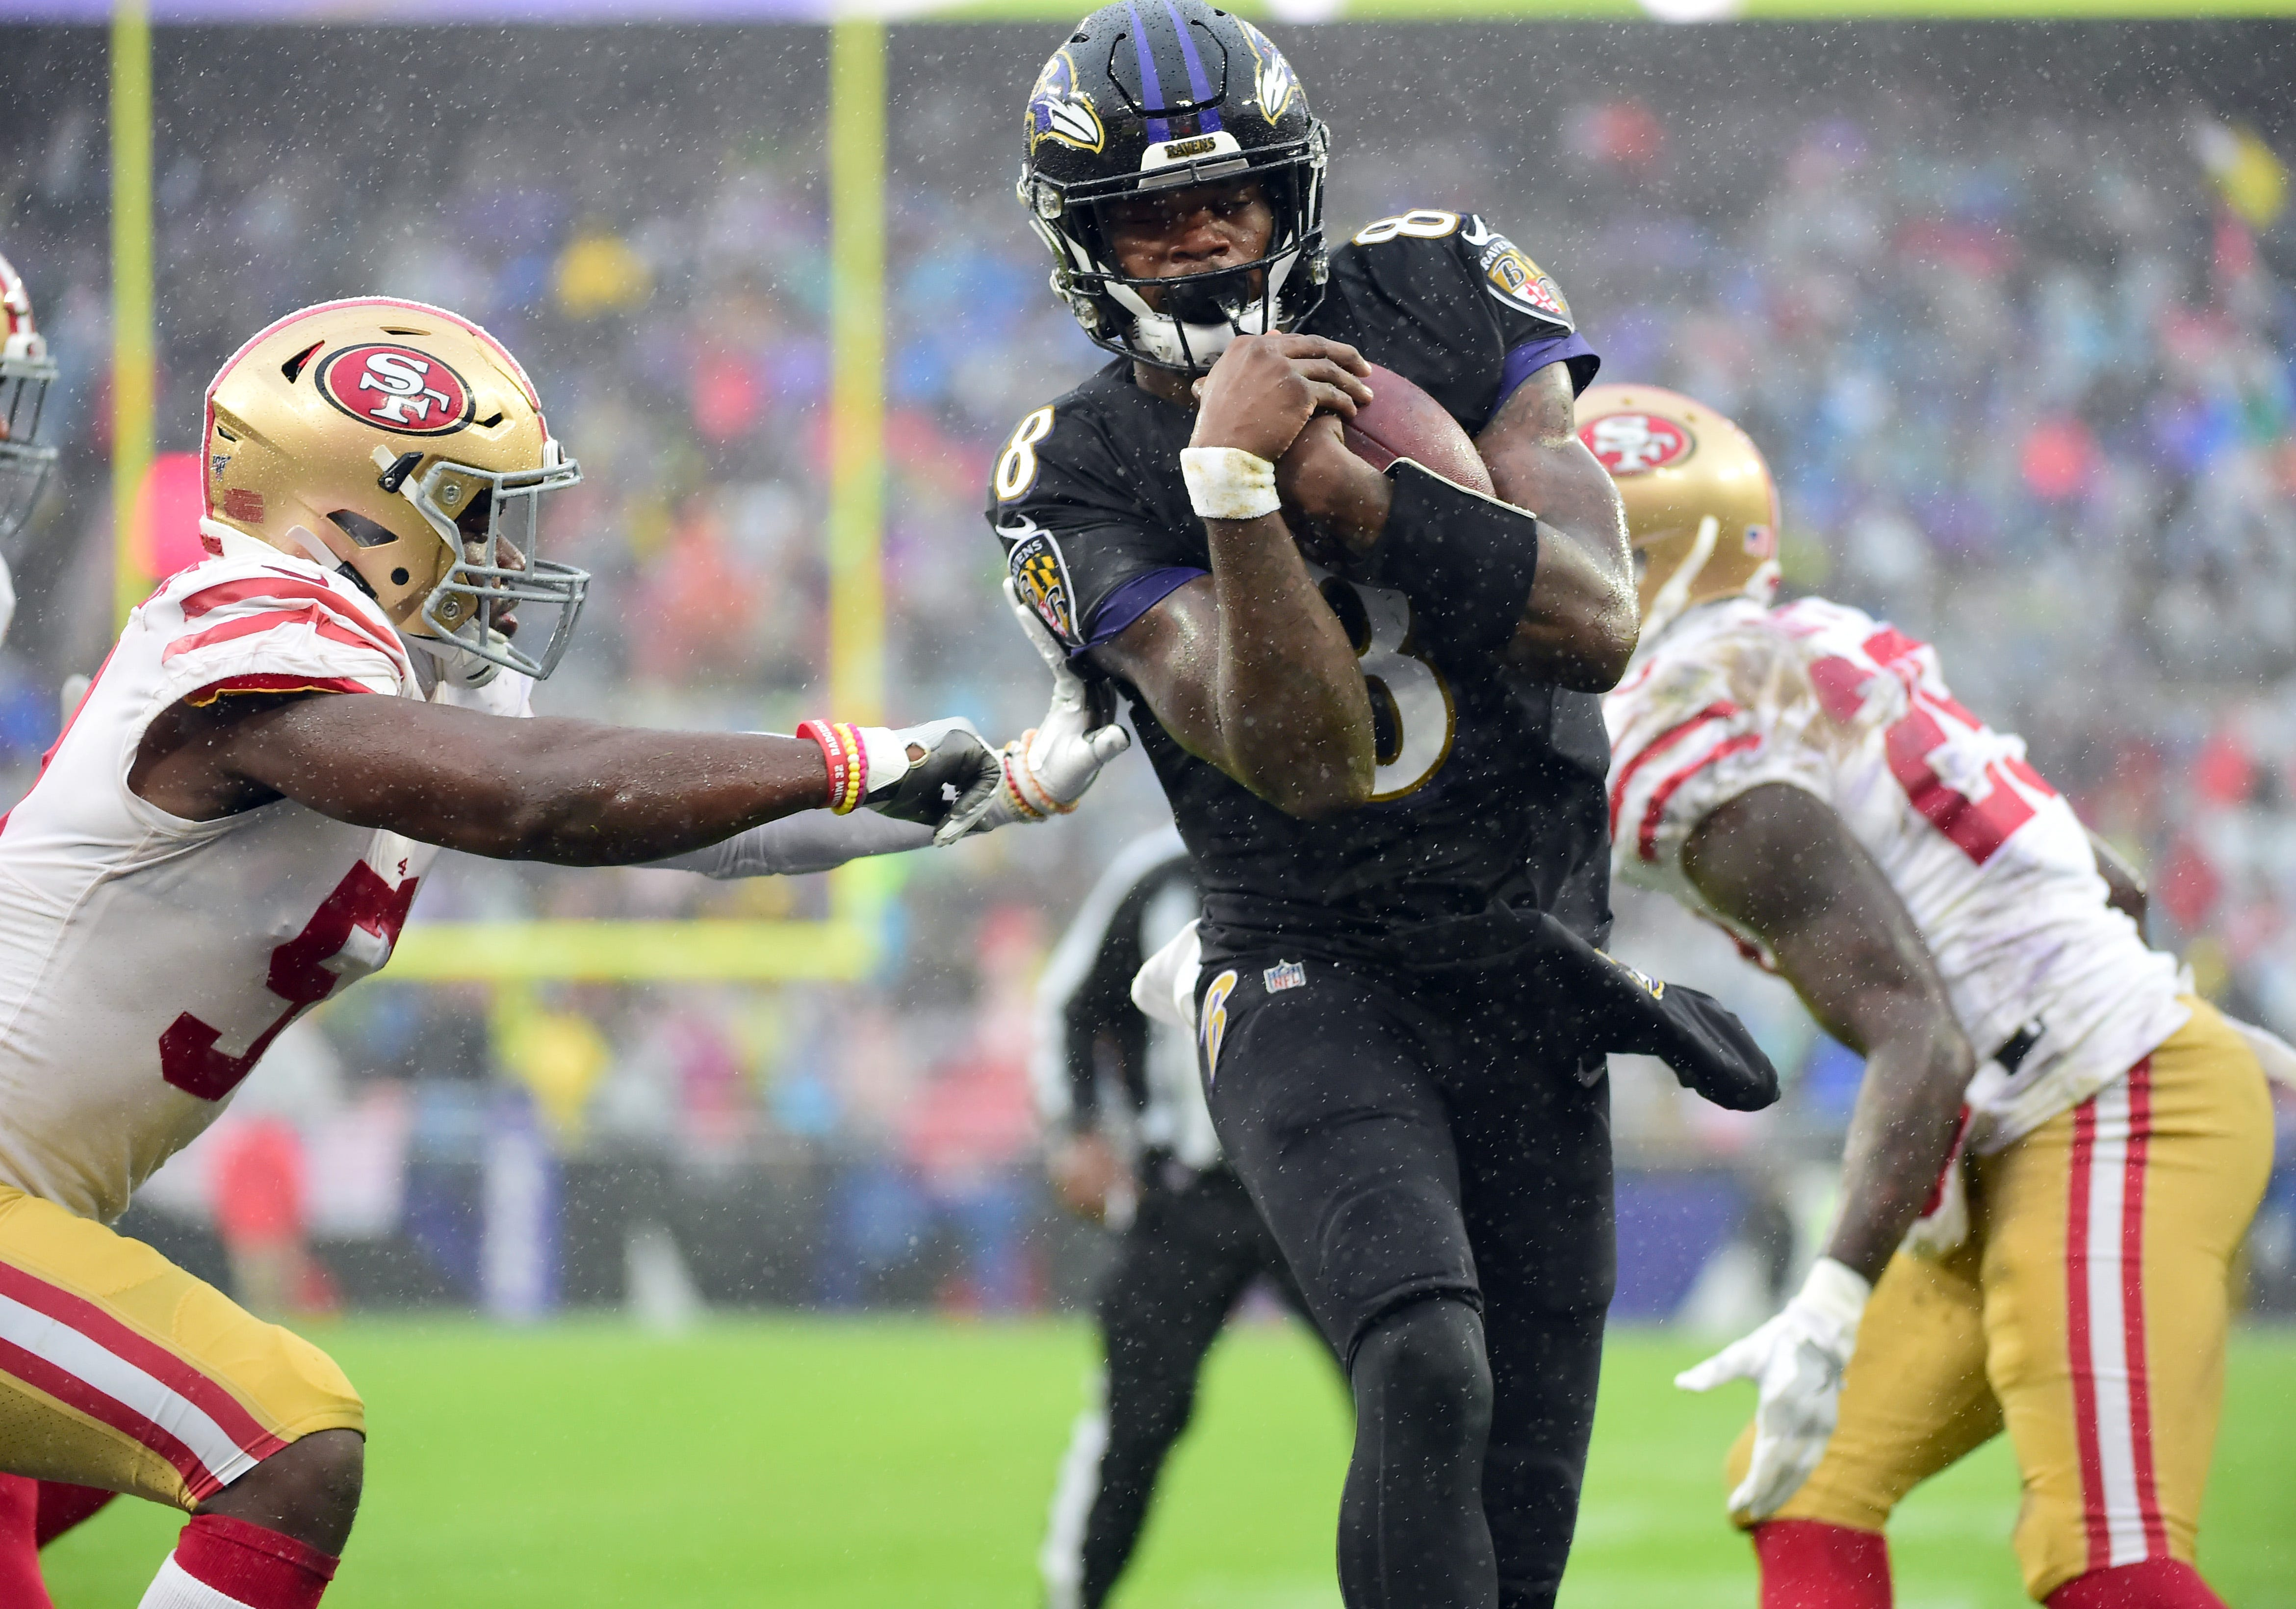 San Francisco 49ers radio analyst Tim Ryan suspended for comments about Lamar Jackson